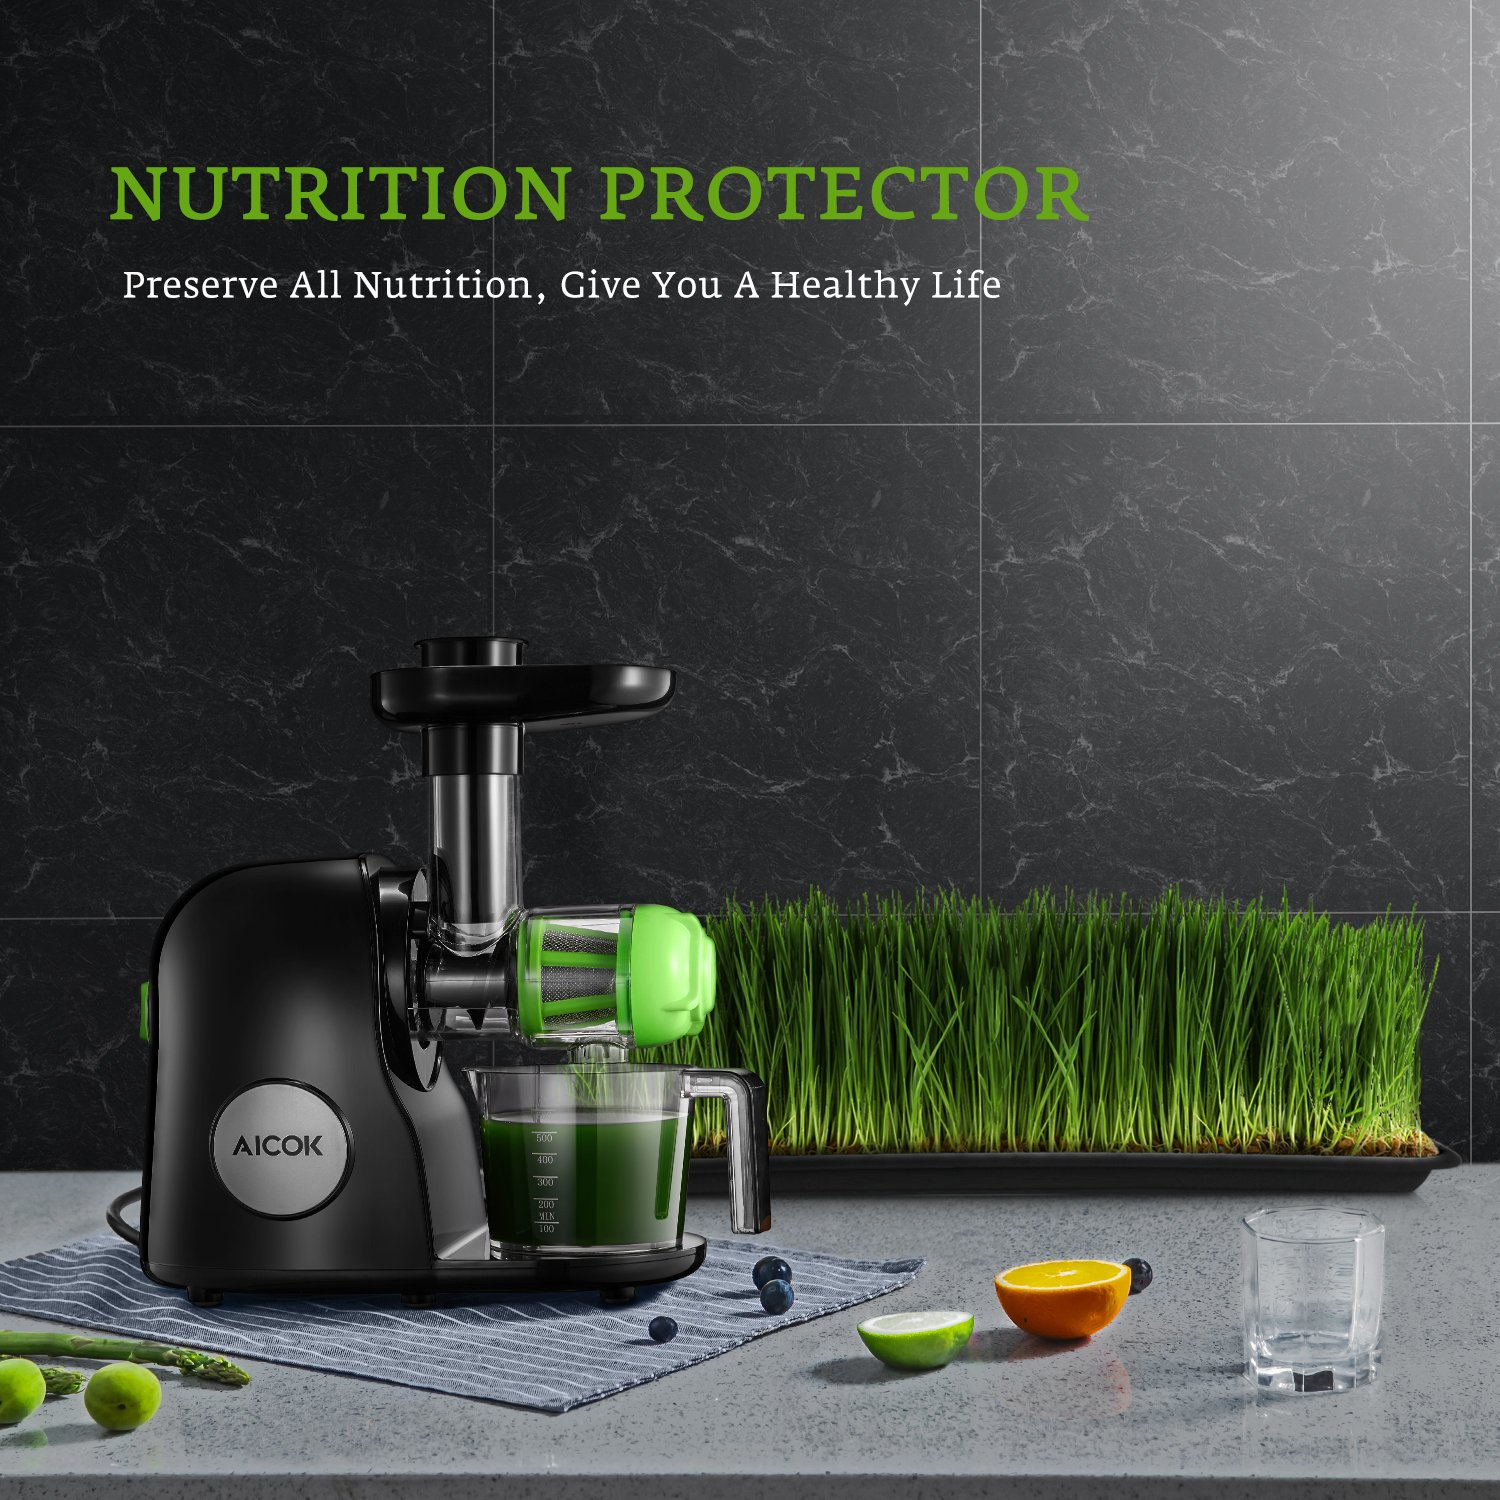 Juicer Masticating Slow Juicer Extractor, Aicok Juice Quiet Motor & Reverse Function, BPA Free, Cold Press Juicer Easy to Clean with Brush, Juice Machine Recipes for Vegetables and Fruits by AICOK (Image #8)